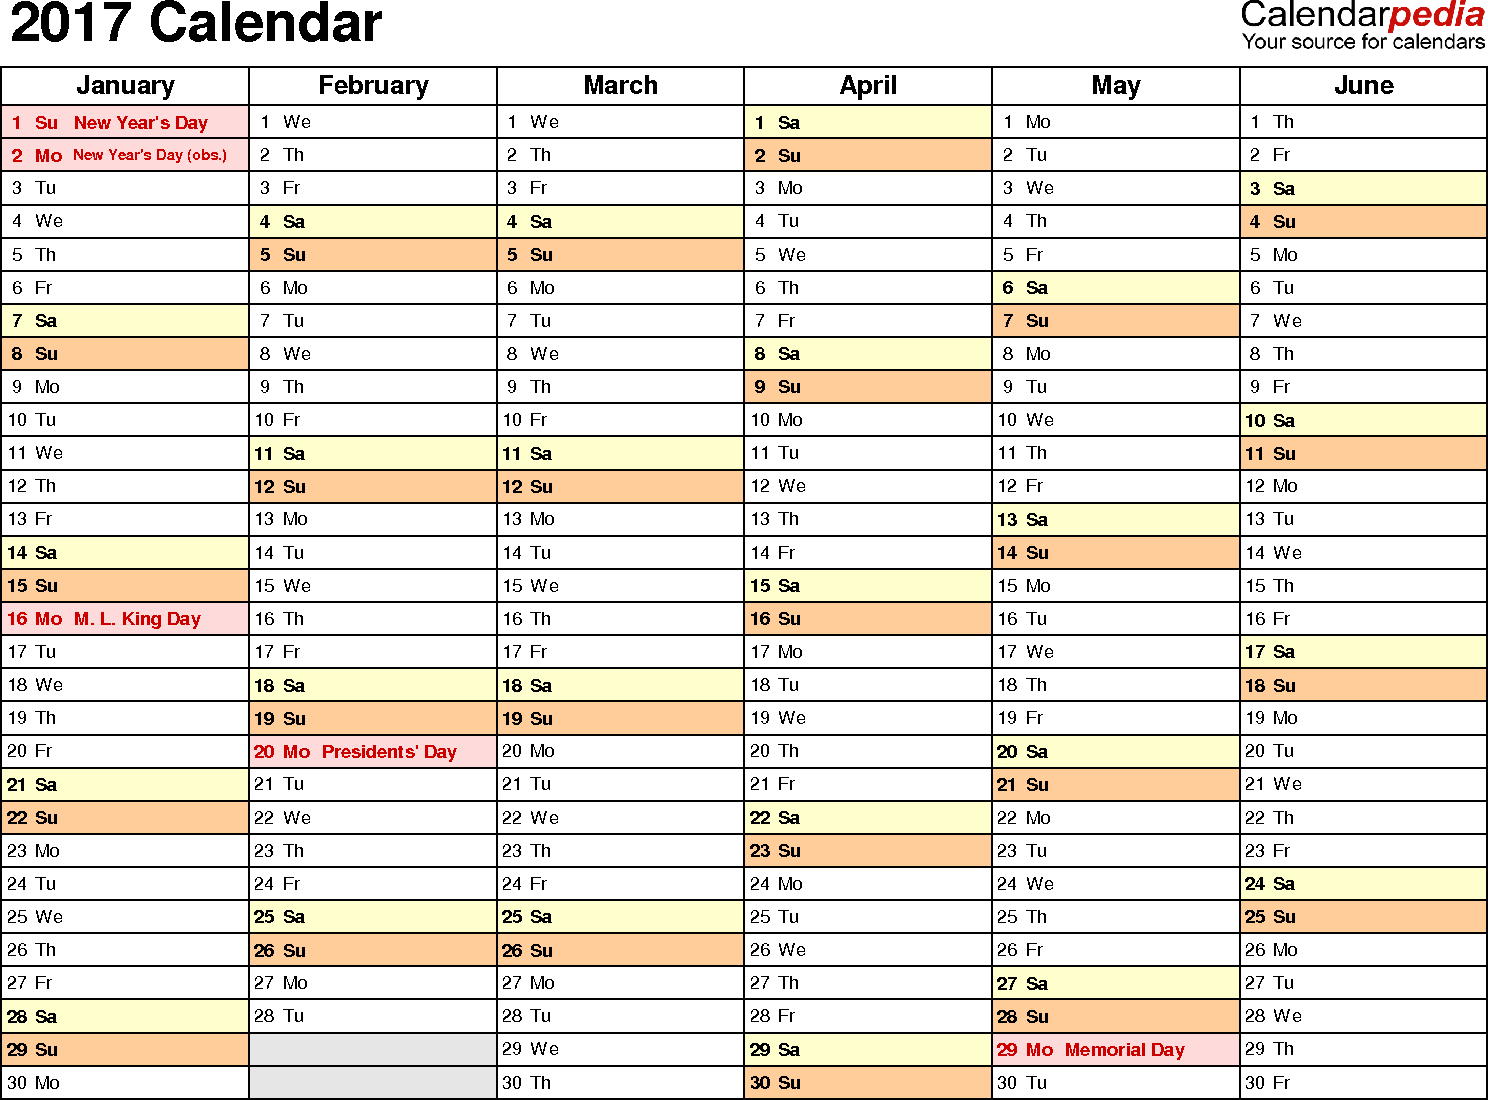 Ediblewildsus  Sweet  Calendar  Download  Free Printable Excel Templates Xls With Extraordinary Template   Calendar For Excel Months Horizontally  Pages Landscape Orientation With Adorable Linking Excel To Access Also Php Excel Writer In Addition Create Csv From Excel And How To Use If Then Statements In Excel As Well As Excel Find Mean Additionally Excel Opens In Compatibility Mode From Calendarpediacom With Ediblewildsus  Extraordinary  Calendar  Download  Free Printable Excel Templates Xls With Adorable Template   Calendar For Excel Months Horizontally  Pages Landscape Orientation And Sweet Linking Excel To Access Also Php Excel Writer In Addition Create Csv From Excel From Calendarpediacom